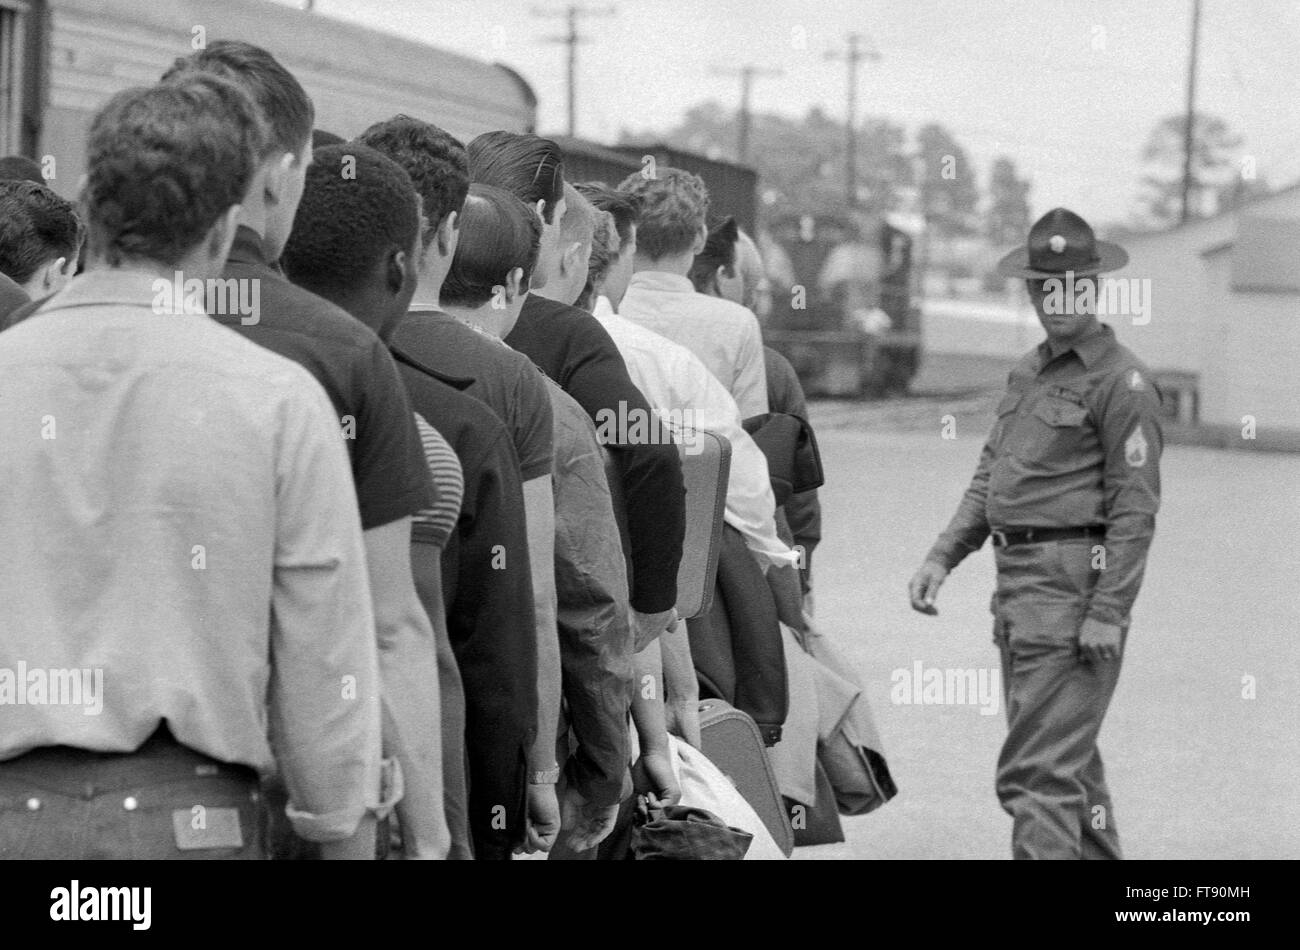 Vietnam Draft. Young men who have been drafted wait in line to be processed into the U.S. Army at Fort Jackson, - Stock Image